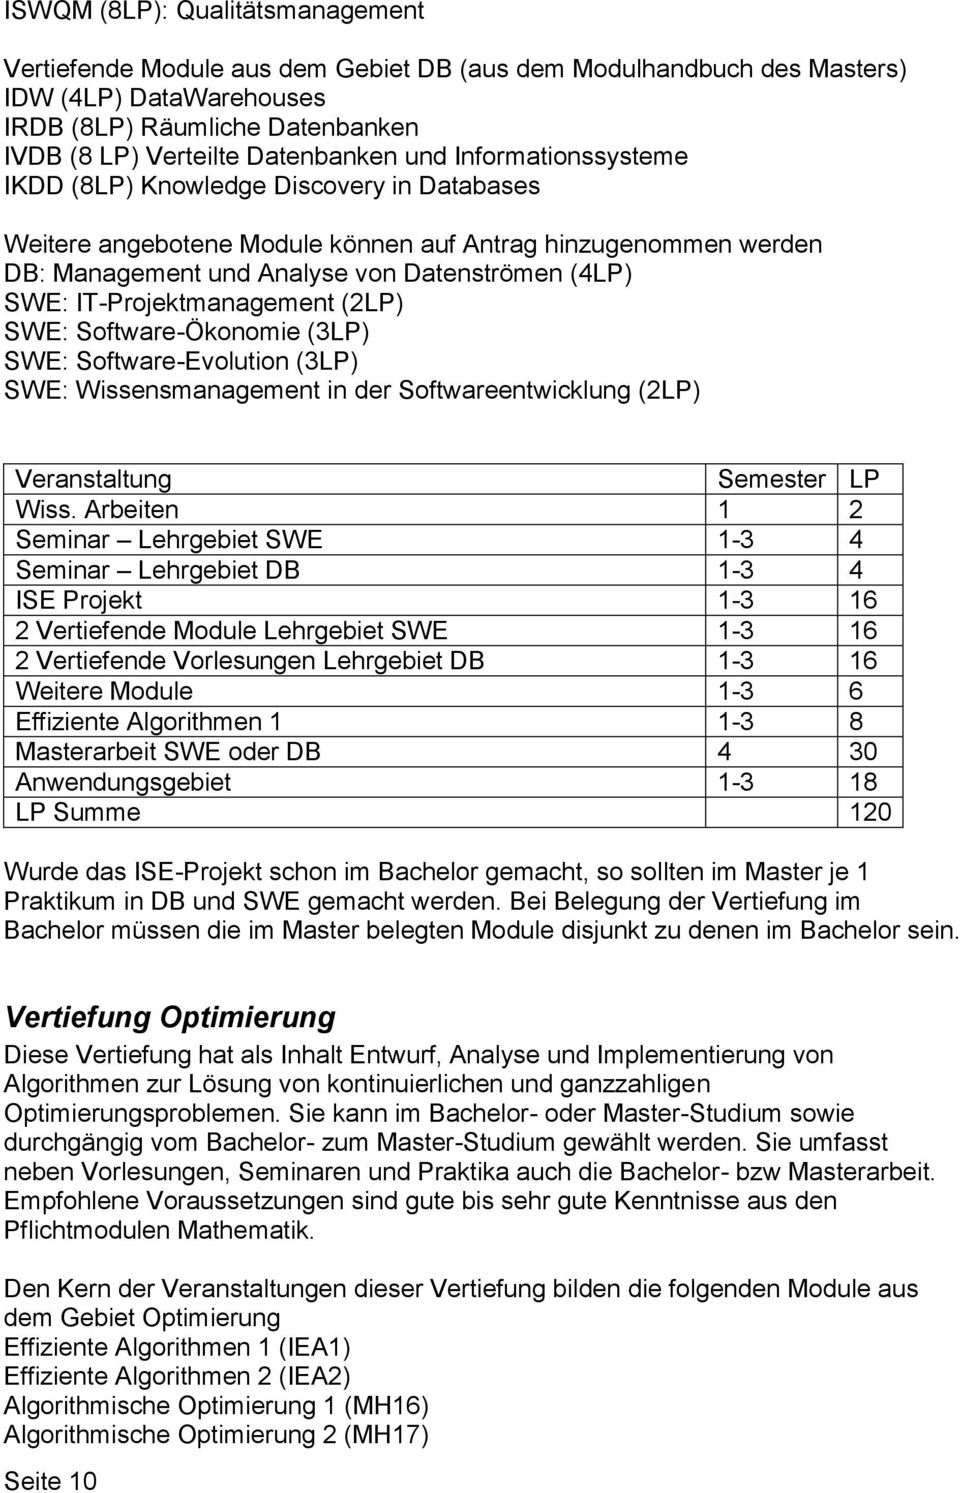 IT-Projektmanagement (2LP) SWE: Software-Ökonomie (3LP) SWE: Software-Evolution (3LP) SWE: Wissensmanagement in der Softwareentwicklung (2LP) Veranstaltung Semester LP Wiss.